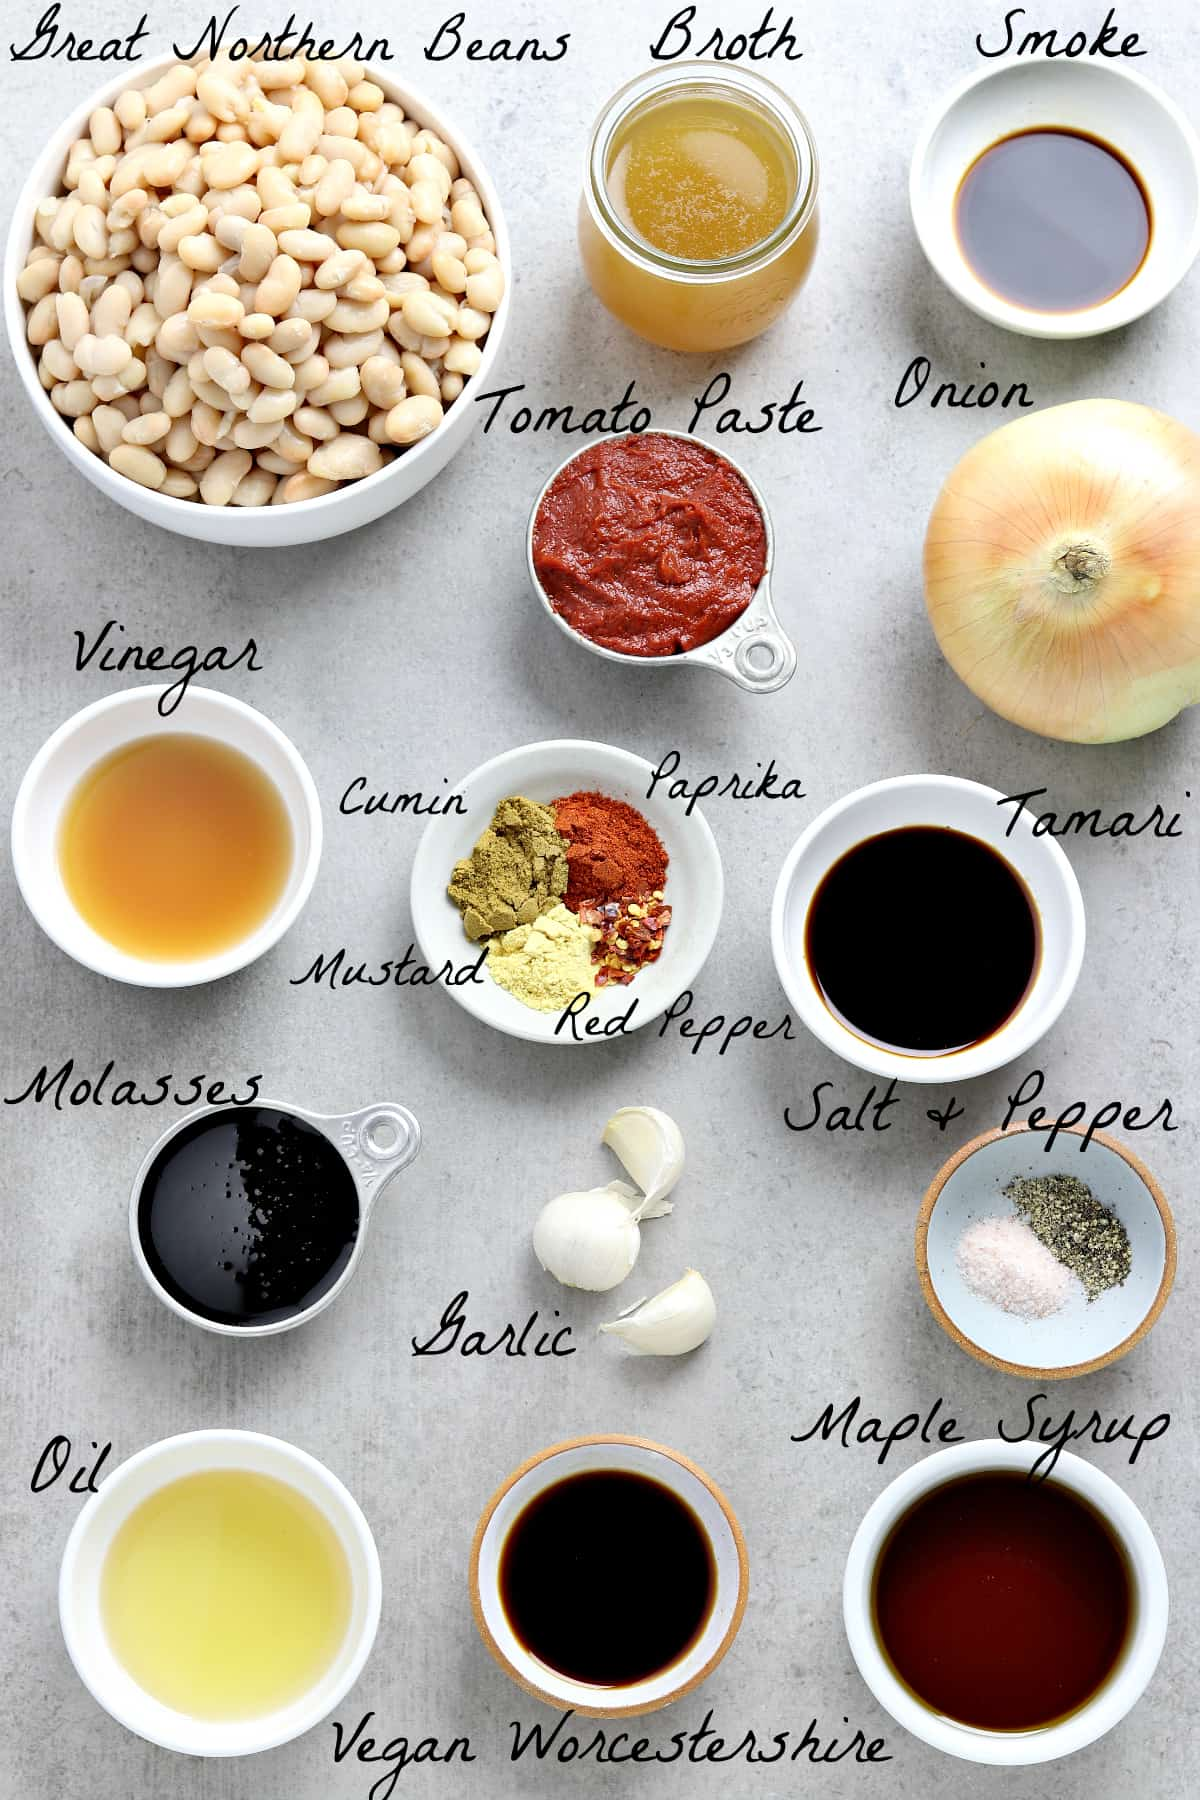 all of the ingredients to make baked beans on a table top.